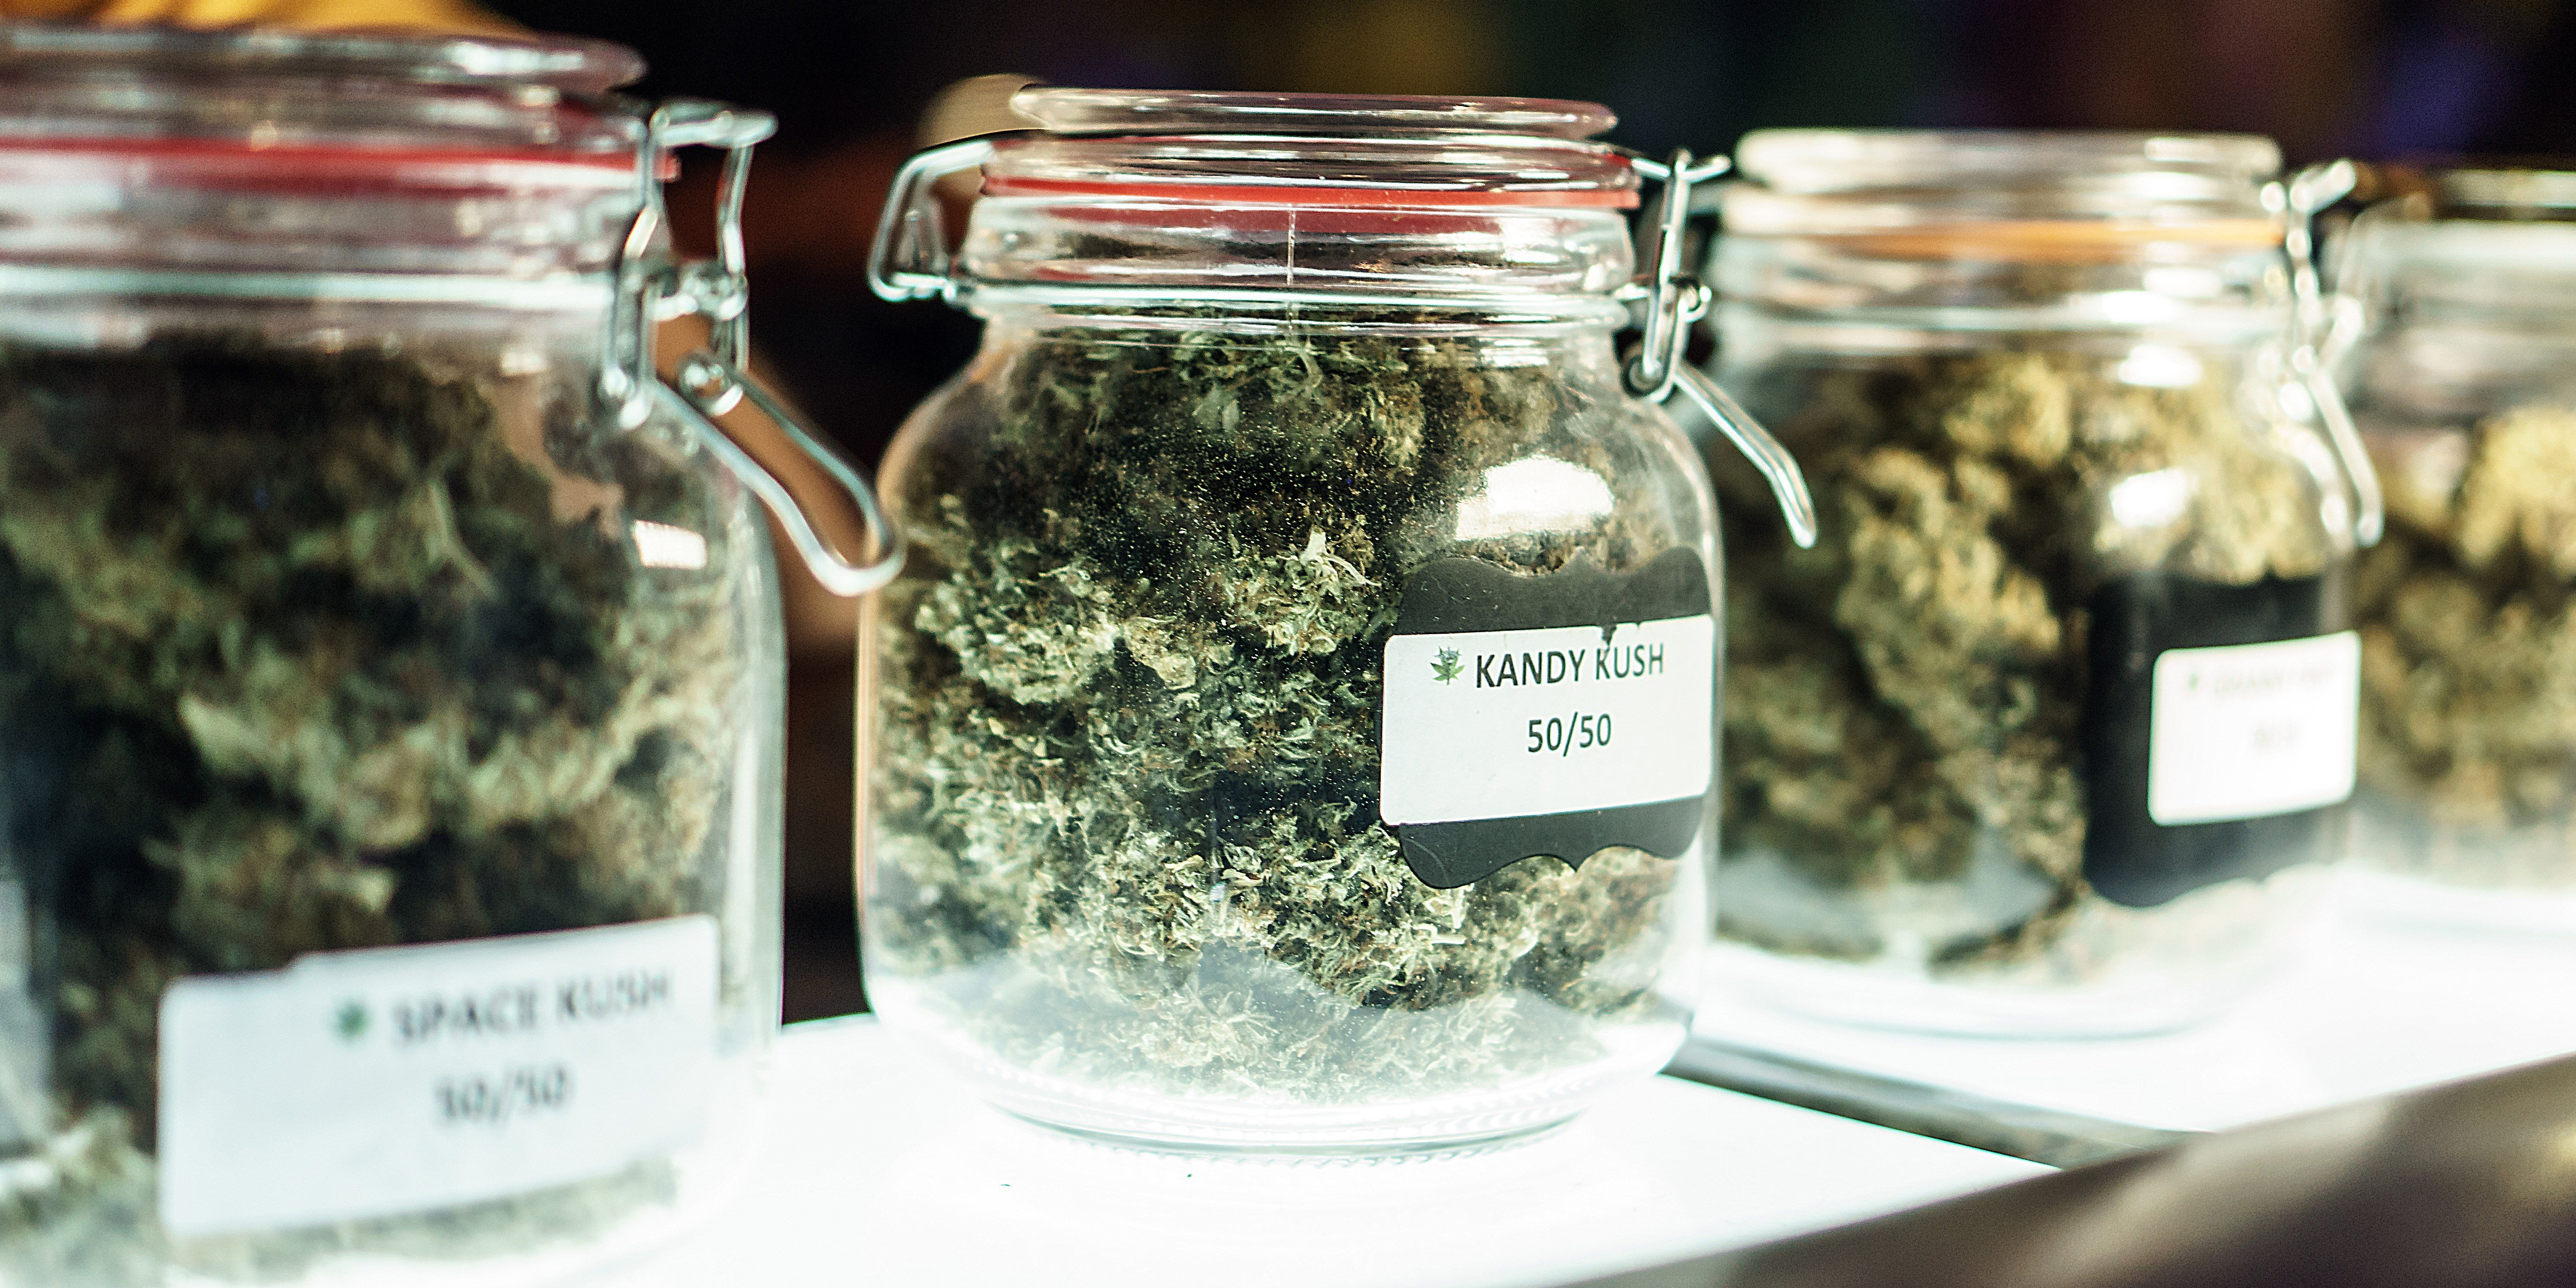 6 Things to Know Before You Even Set Foot in a Cannabis Dispensary